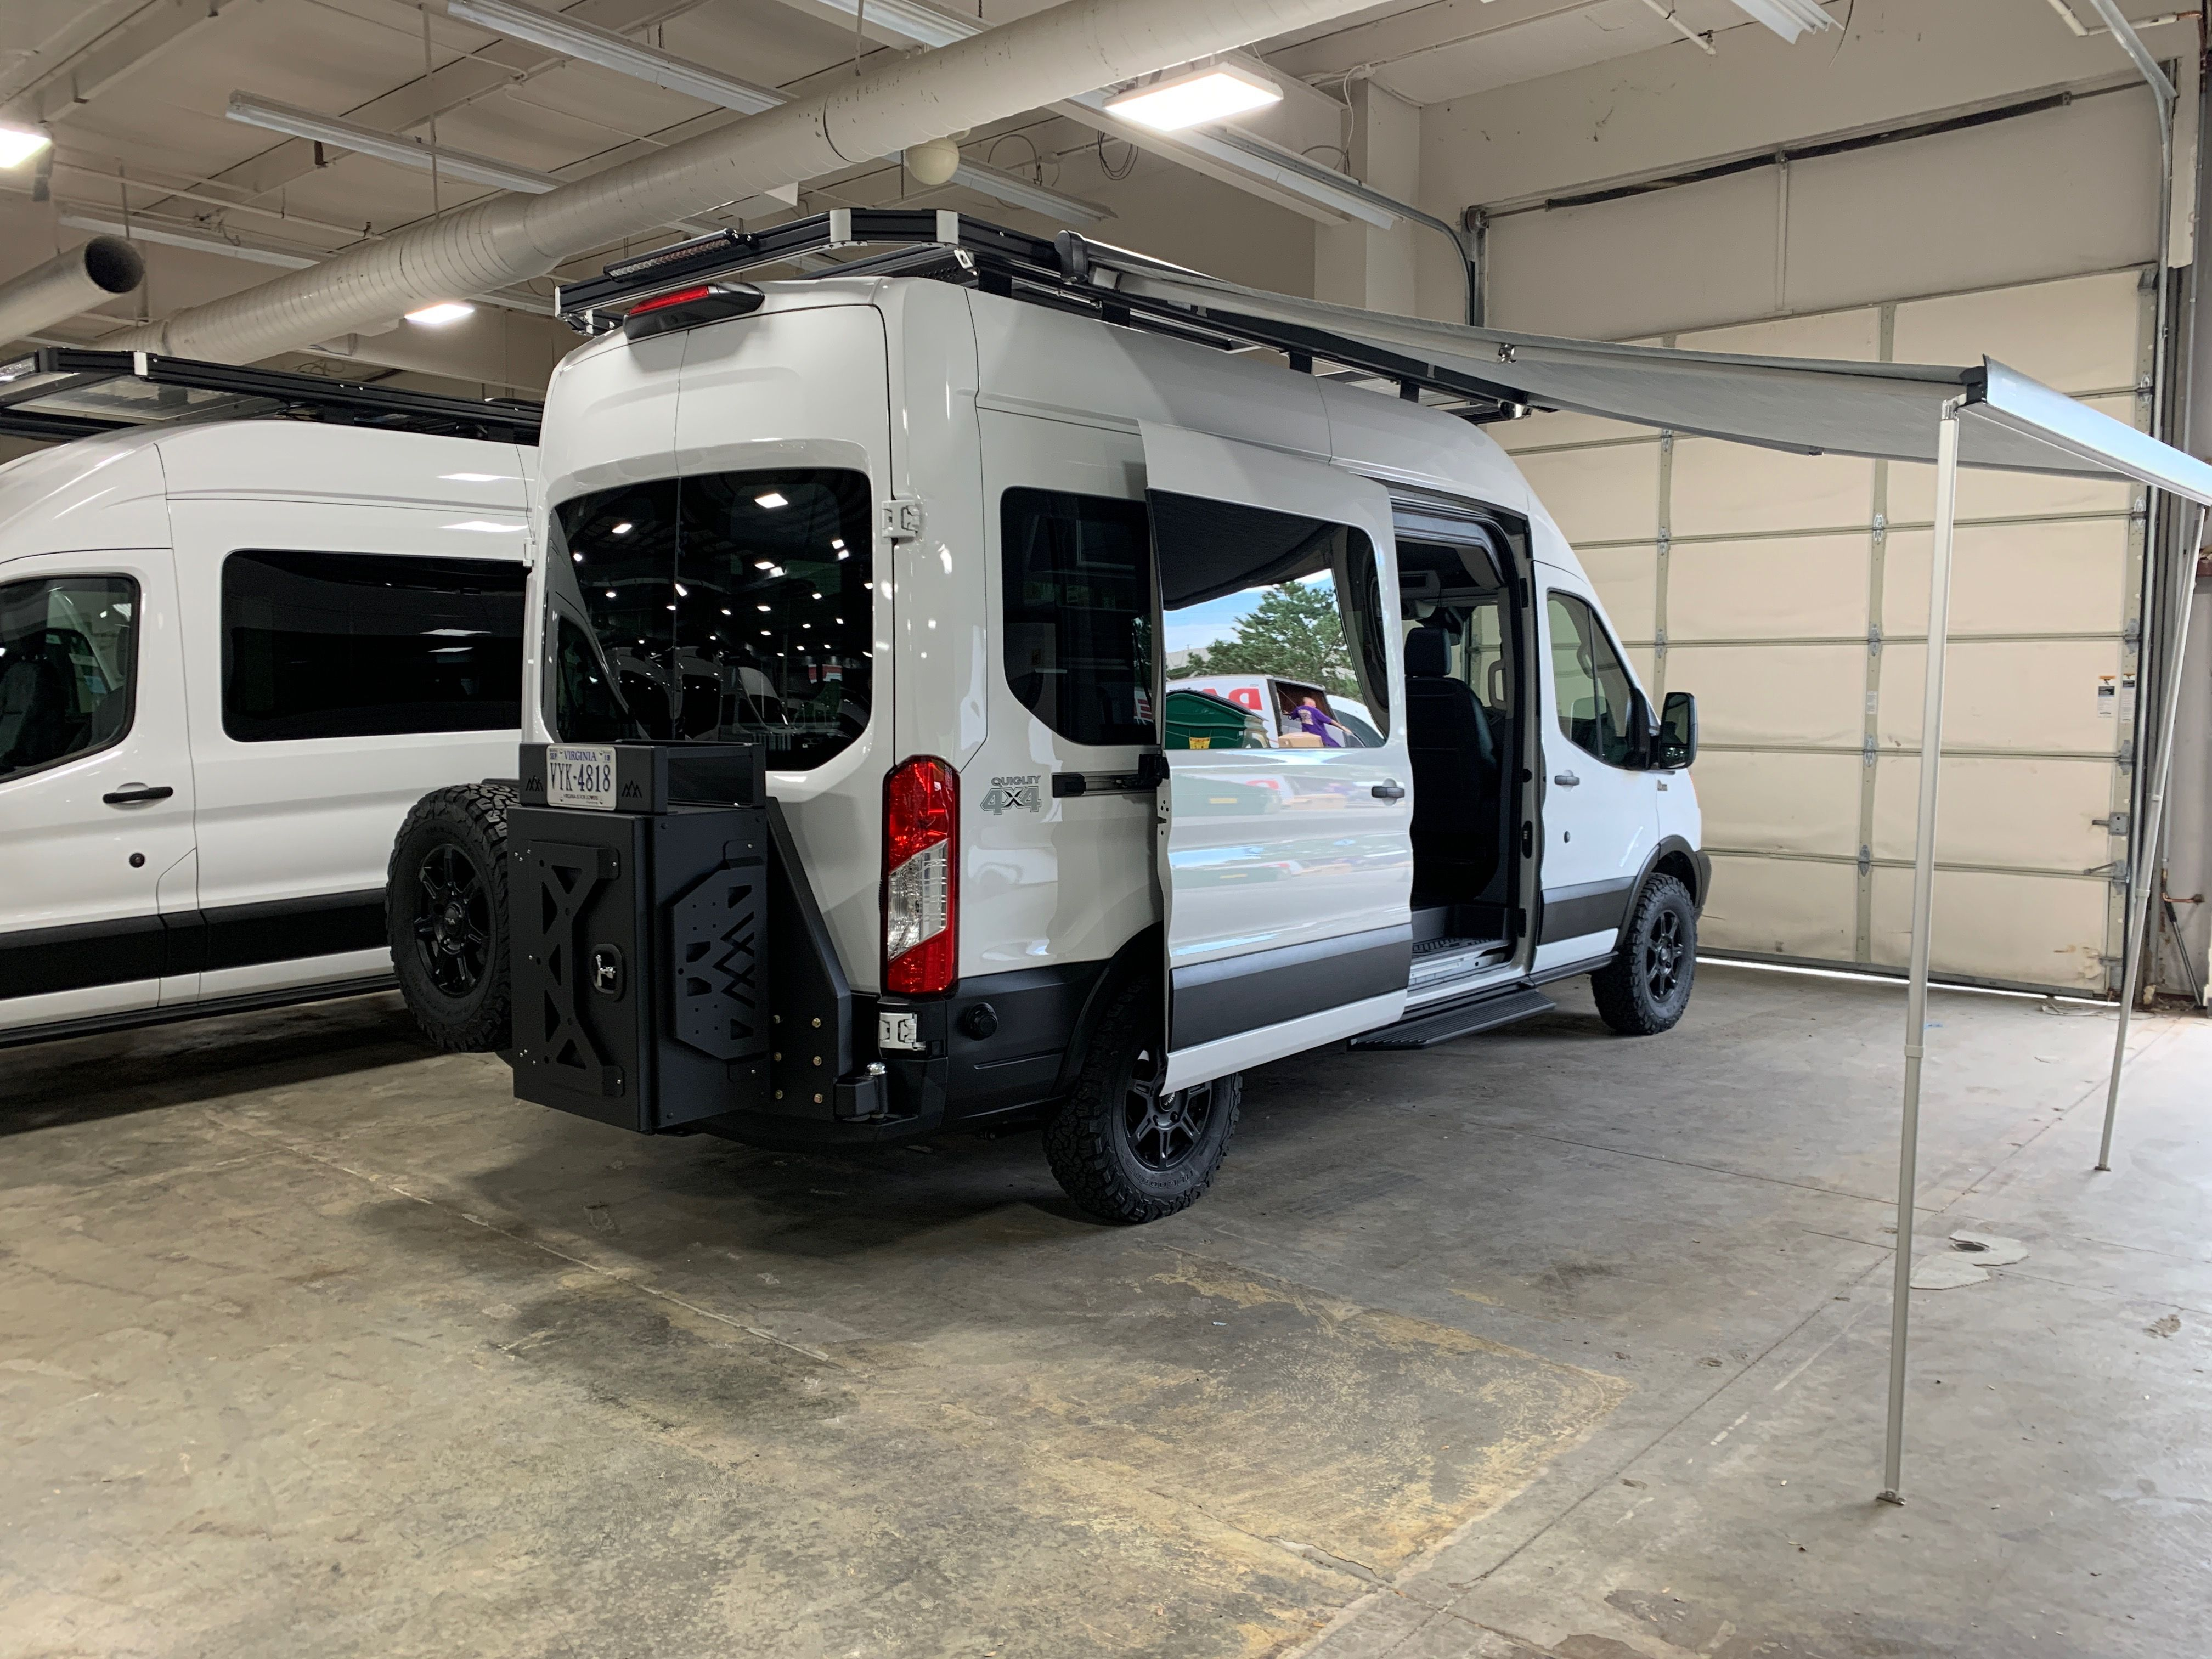 Vandoit Camper Van With Backwoods Bumper And Thule Awning In 2020